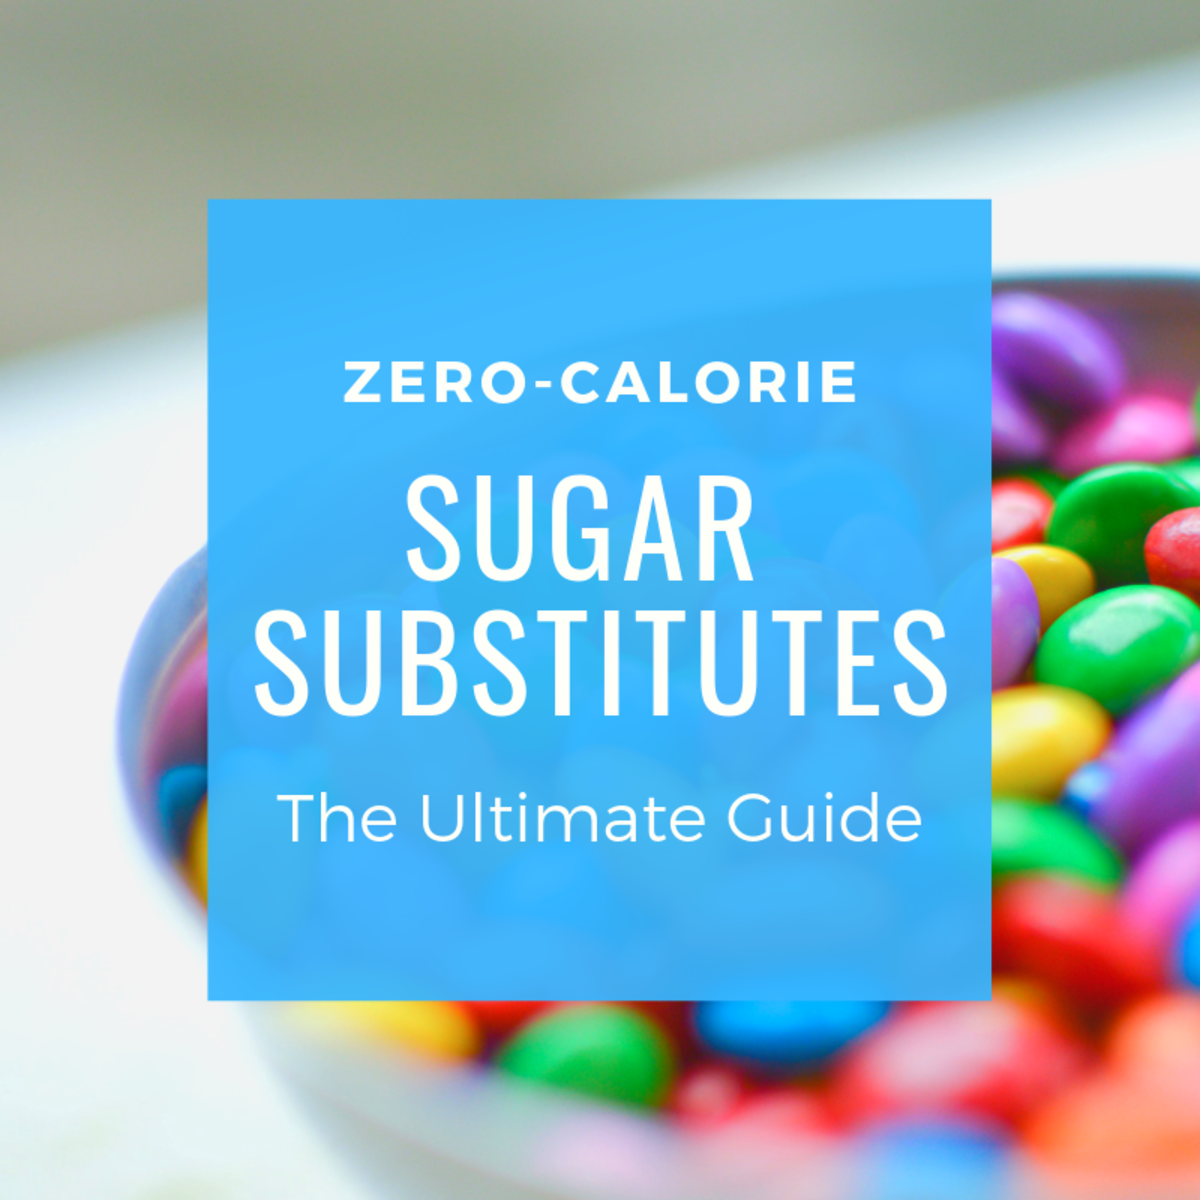 The Ultimate Guide to Zero-Calorie Sugar Substitutes